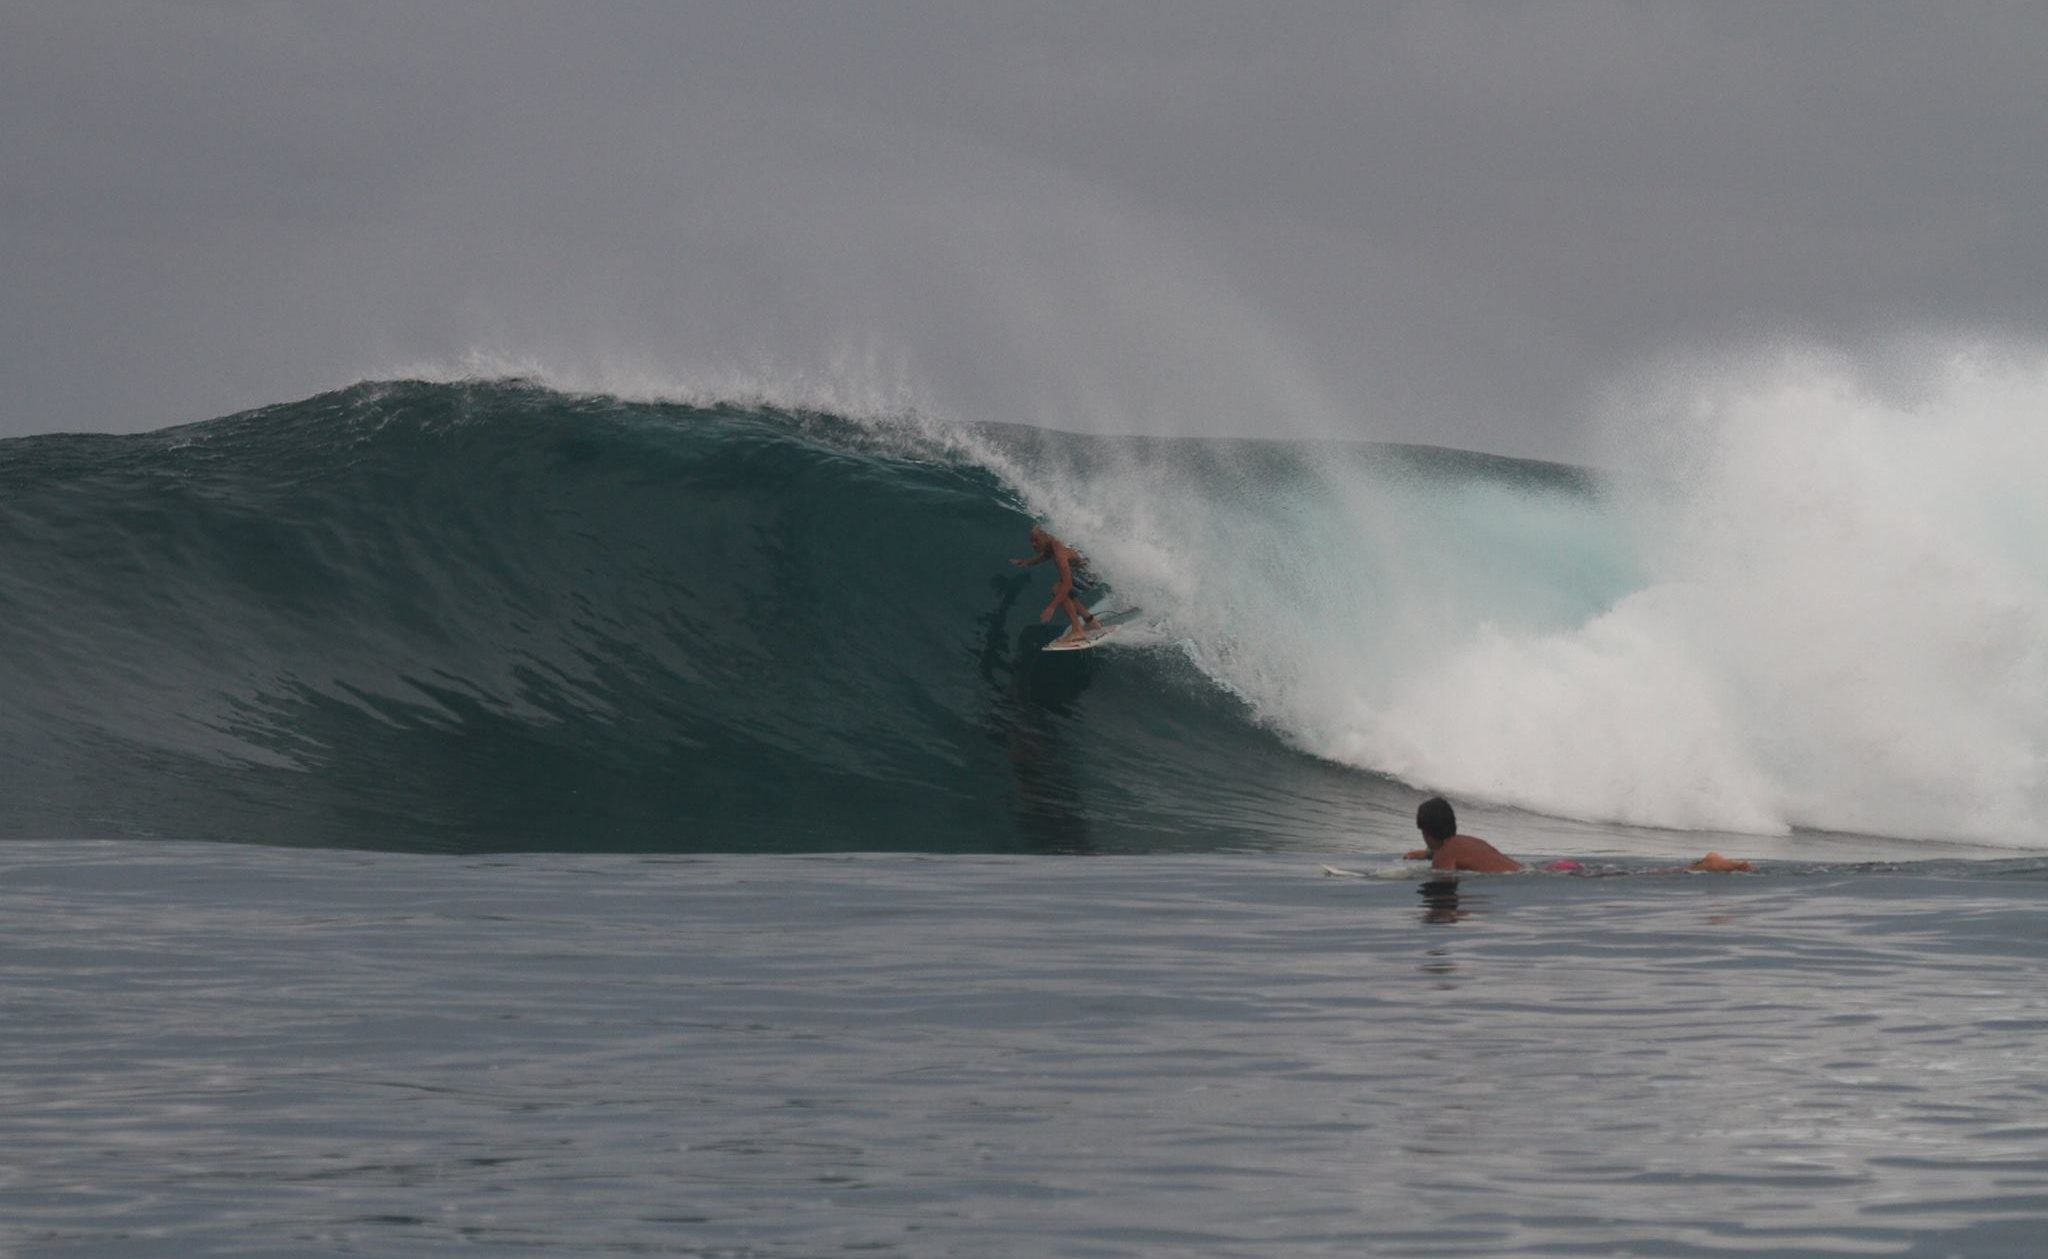 Vaughan Blakey scoring near Male on August 23. Photo - Andy Potts C/O The Perfect Wave